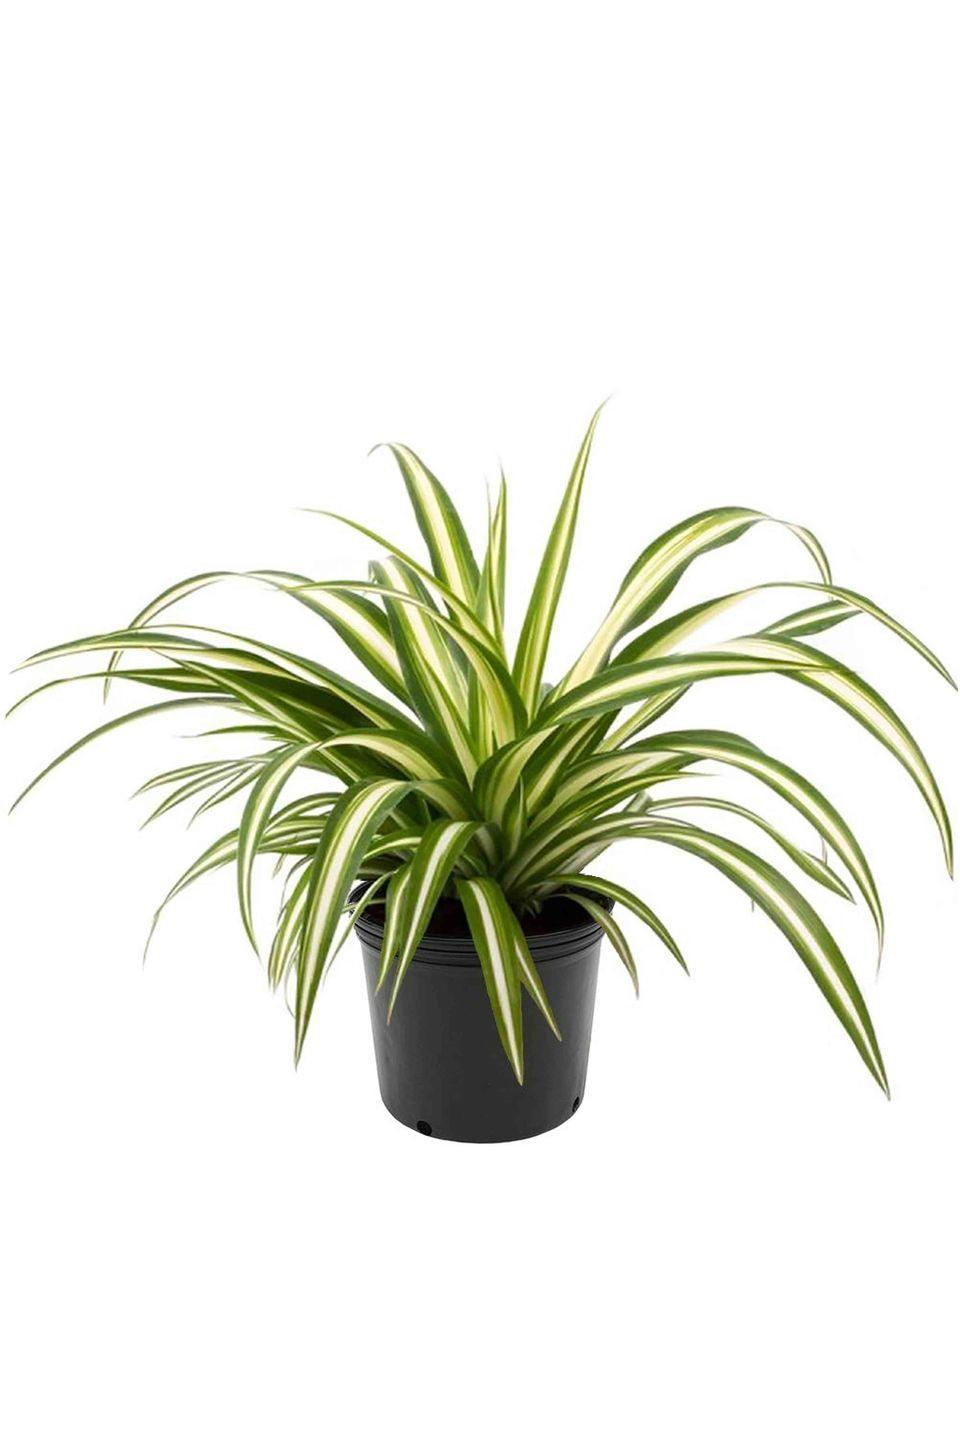 """<p><a class=""""link rapid-noclick-resp"""" href=""""https://www.amazon.com/AMERICAN-PLANT-EXCHANGE-Spider-Plant/dp/B07NQBS6DC/ref=sr_1_8?crid=2I8WSKJCV0I1B&keywords=spider+plant&qid=1560880671&s=gateway&sprefix=spider+pl%2Caps%2C126&sr=8-8&tag=syn-yahoo-20&ascsubtag=%5Bartid%7C10052.g.3284%5Bsrc%7Cyahoo-us"""" rel=""""nofollow noopener"""" target=""""_blank"""" data-ylk=""""slk:Shop Now"""">Shop Now</a></p><p><em>$20, Amazon</em></p><p>Even if you skip town for the weekend and forget to assign a friend plant-sitting duties, the spider plant will not punish you for neglecting it. The self-propagating, air-cleaning, petite, and pretty spider plant will grow in low to bright indirect light, making it a great option for apartment dwellers or first-time plant parents. </p>"""